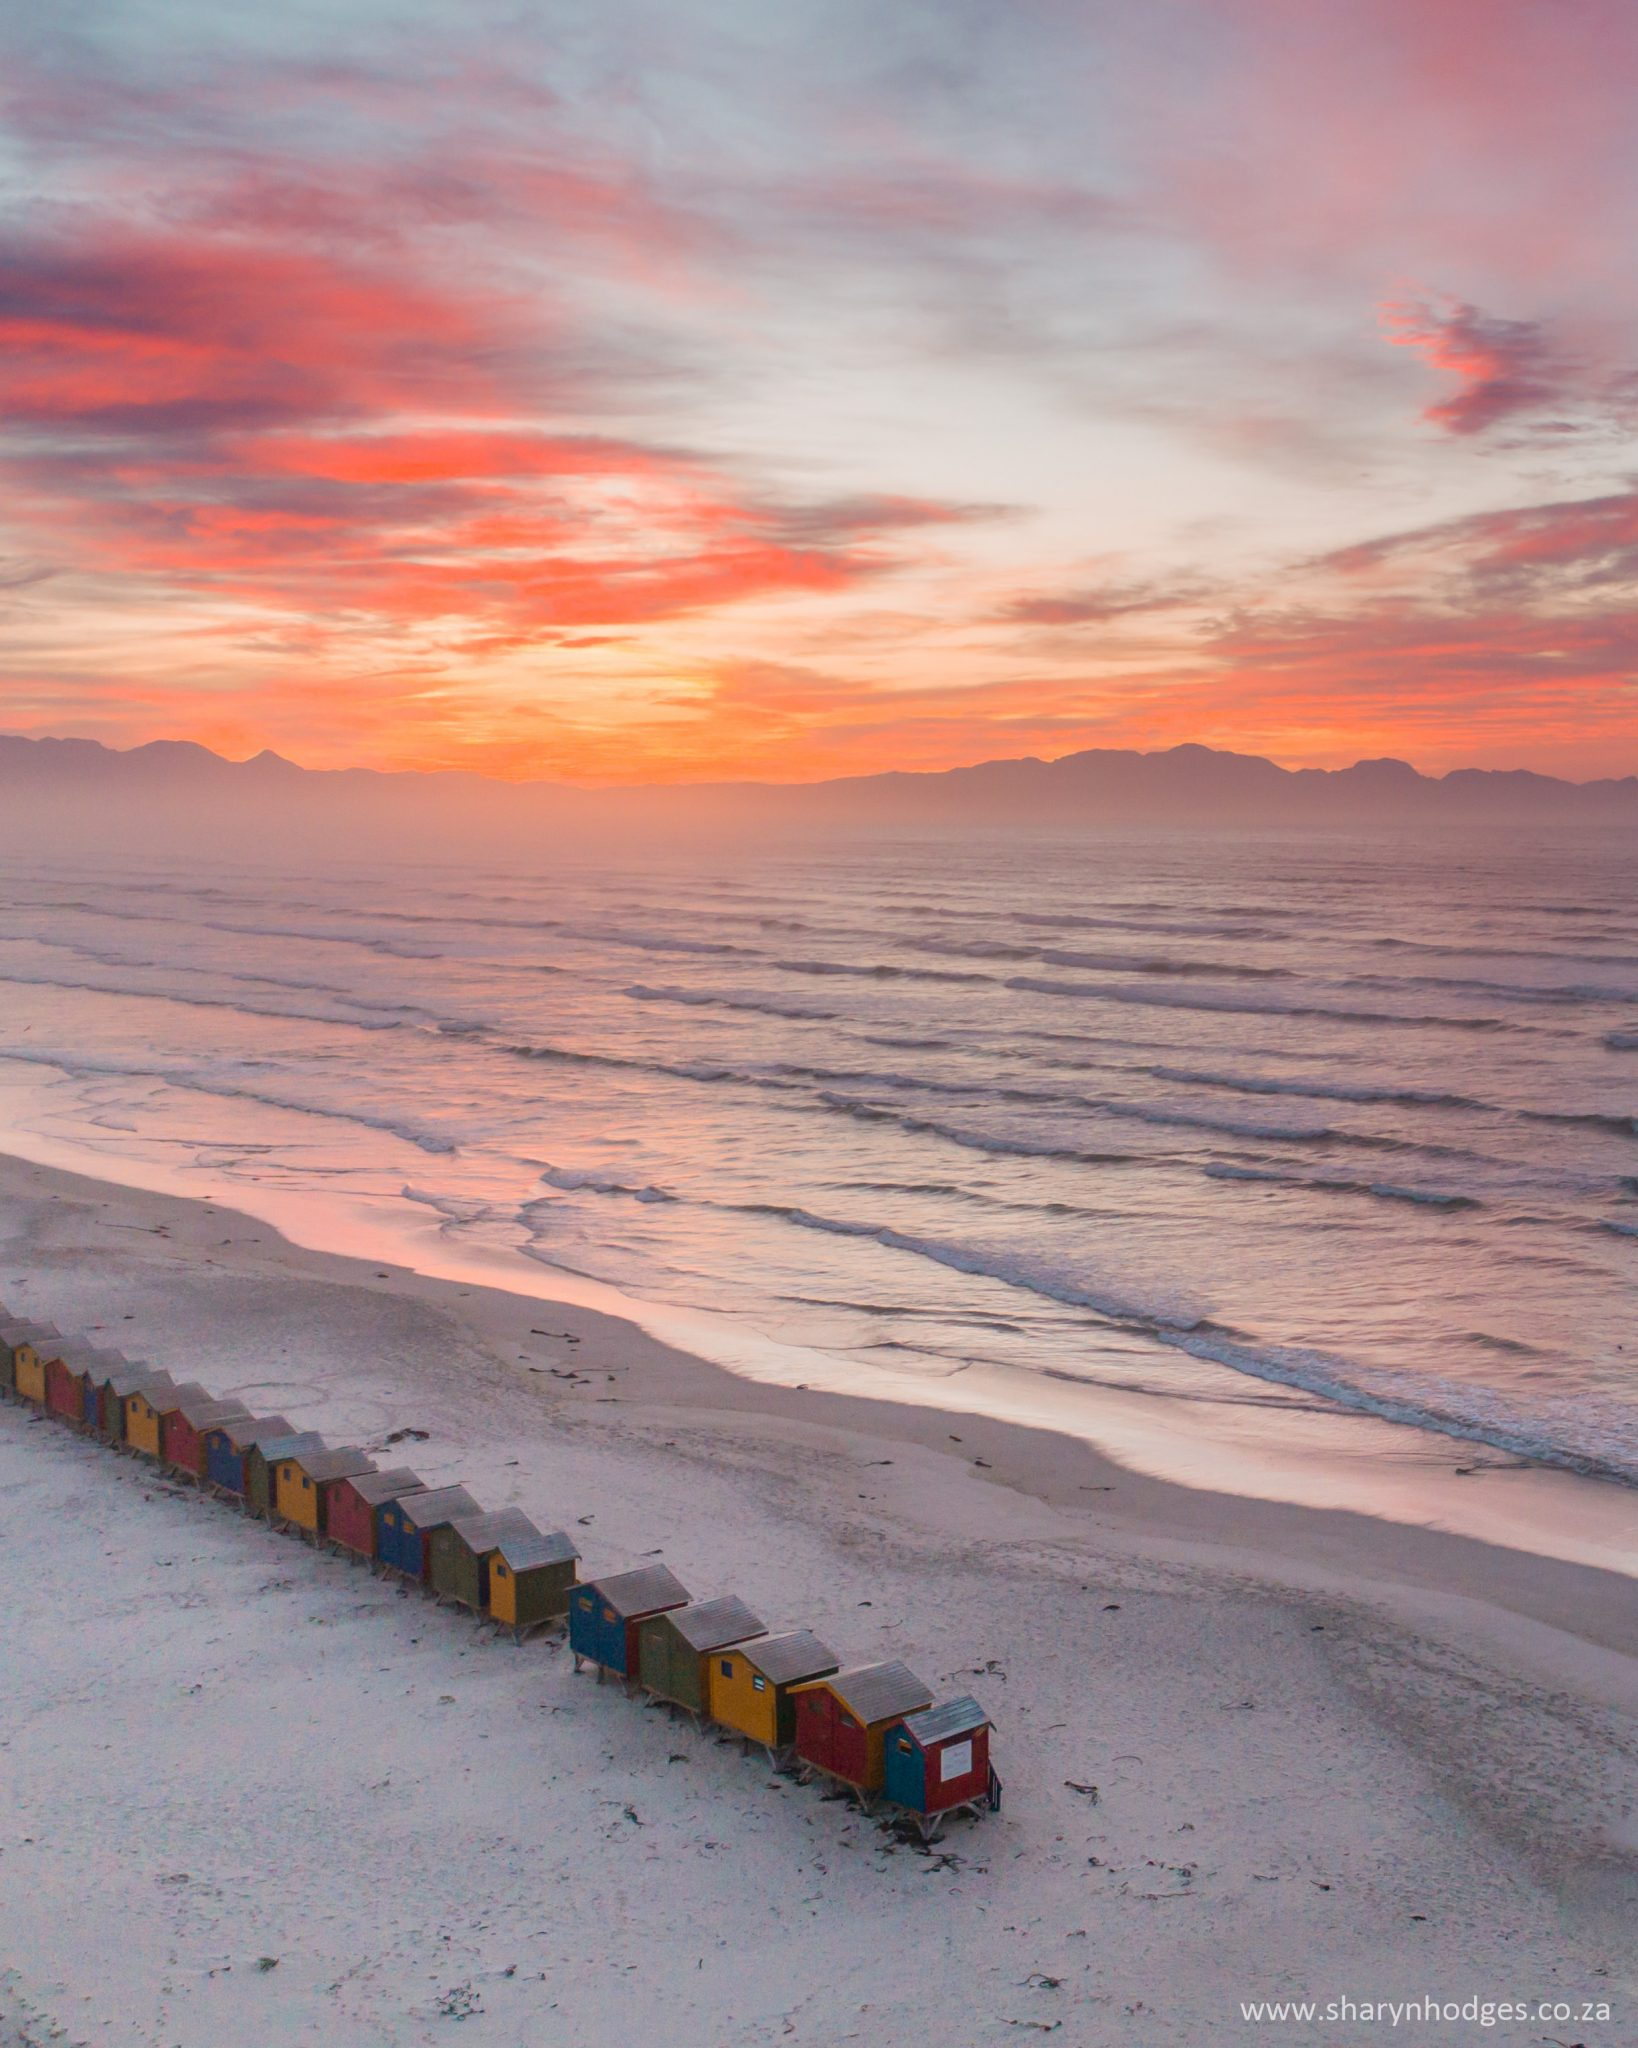 Muizenberg Sunrises by Sharyn Hodges